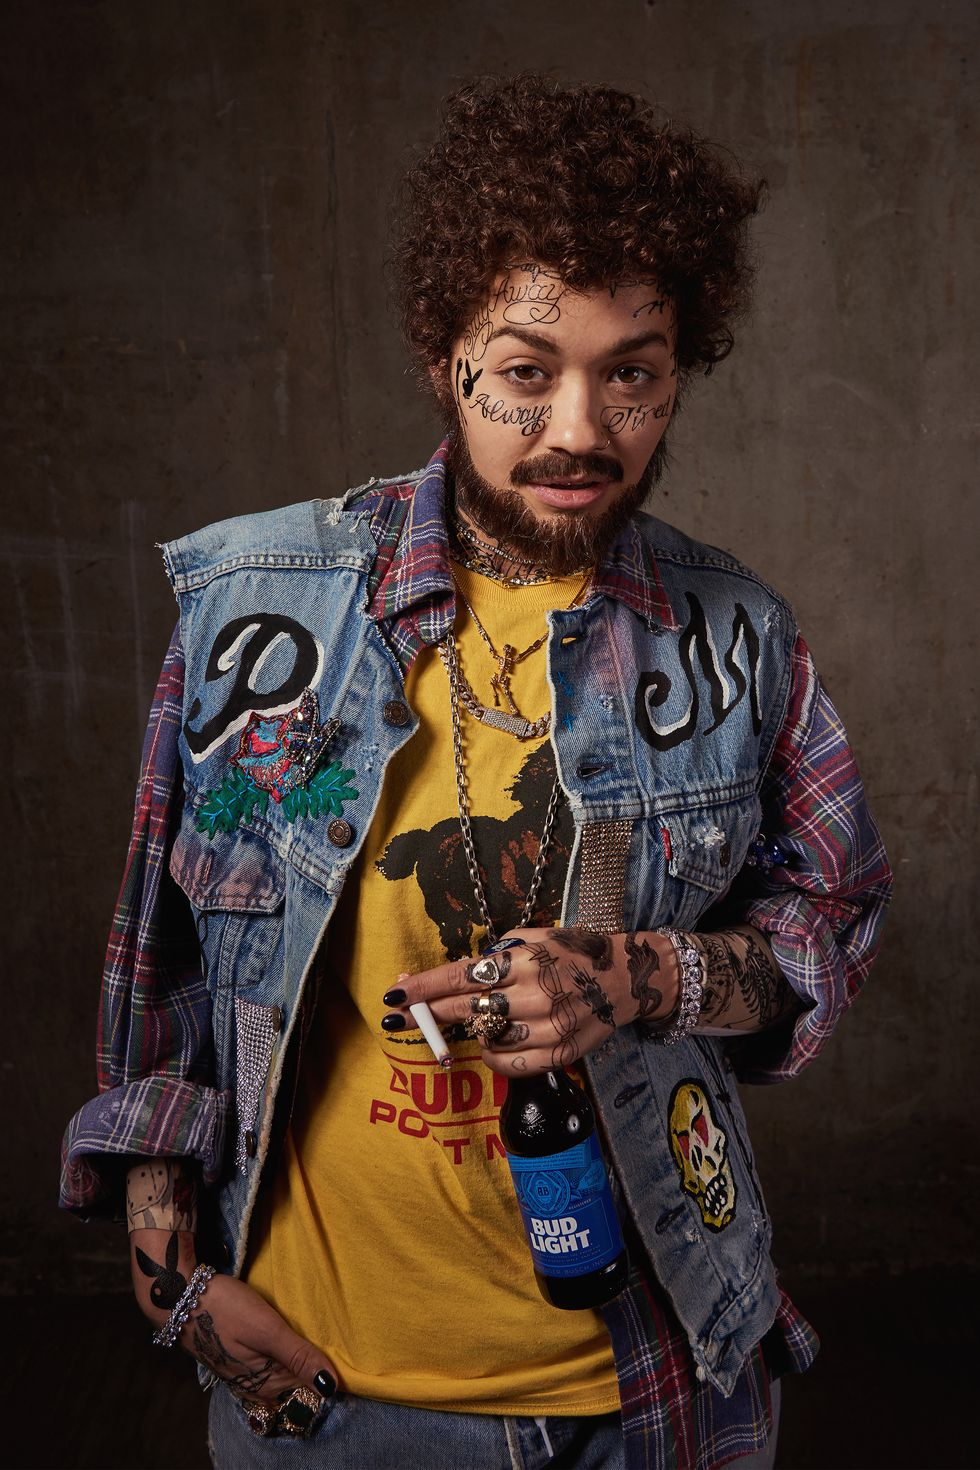 Rita Ora transformed into Post Malone with his signature tattoos, curly hair and full beard. she's wearing a denim embellished jacket over a yellow shirt, cigarette and beer in hand. It is almost impossible to tell that it's Rita under the get-up.